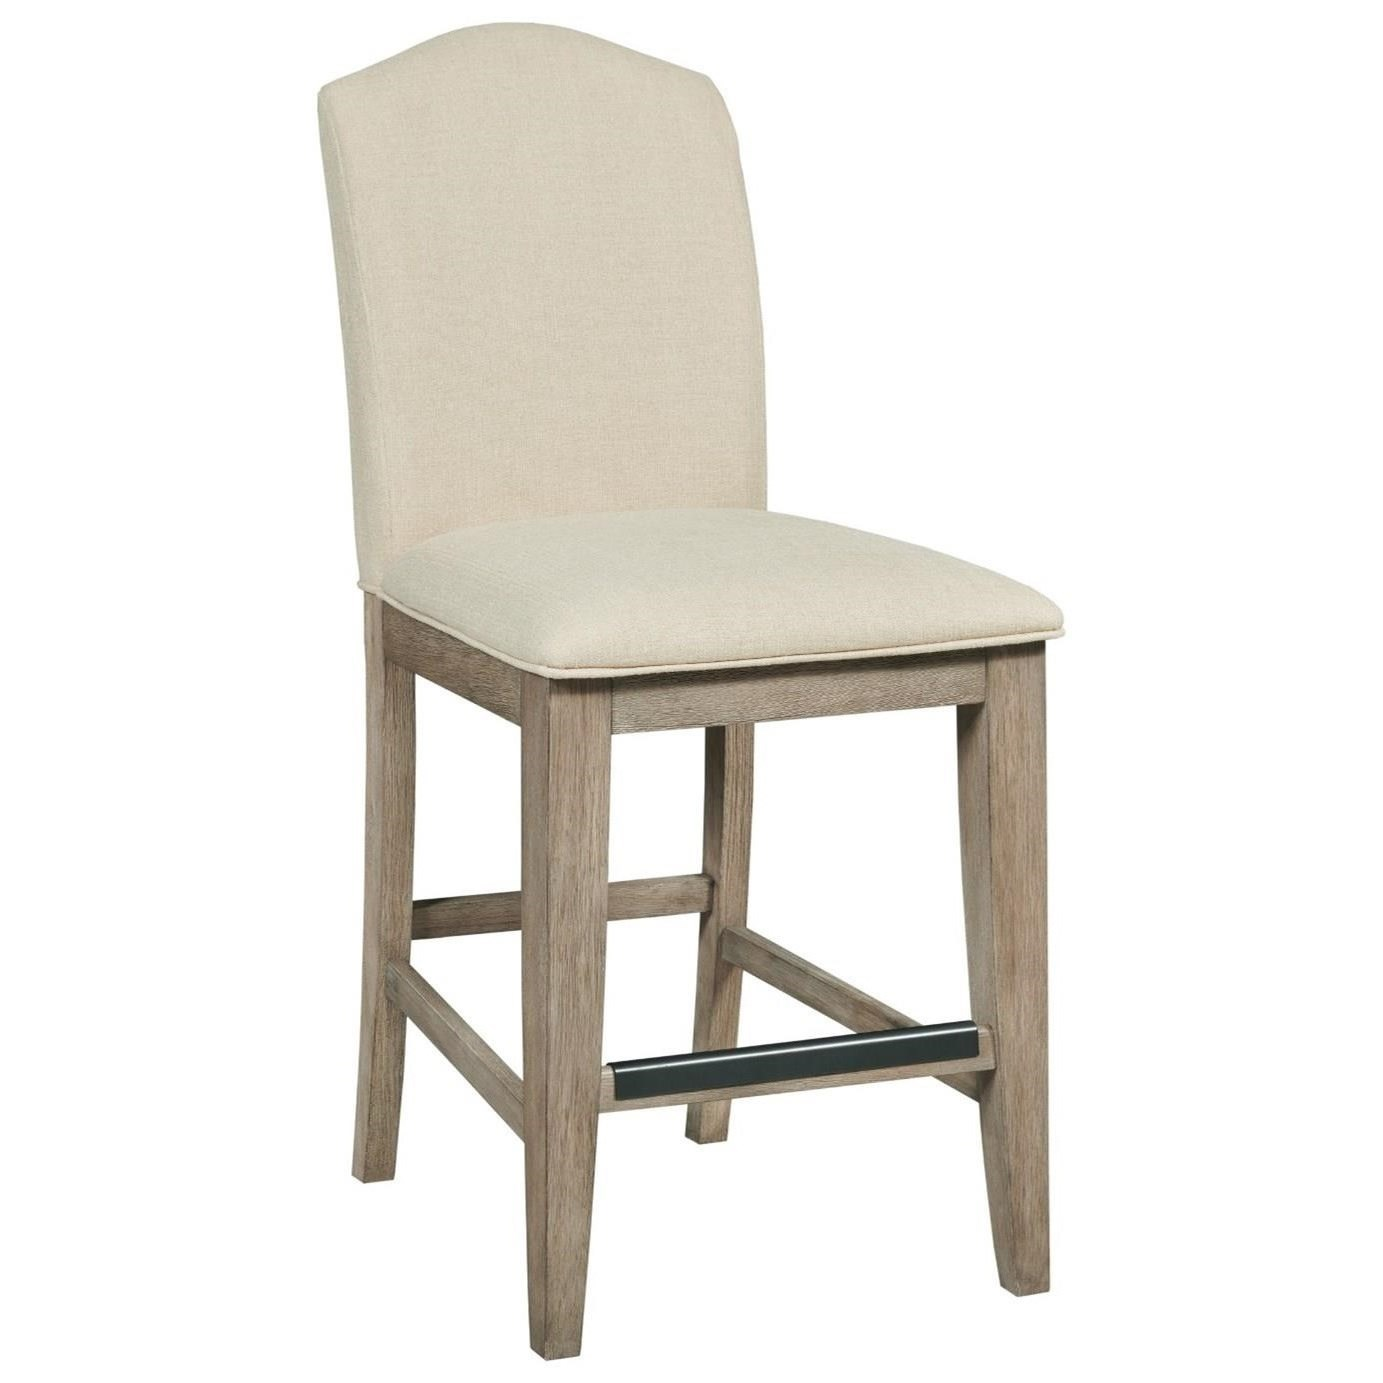 The Nook Counter Height Parsons Chair by Kincaid Furniture at Northeast Factory Direct